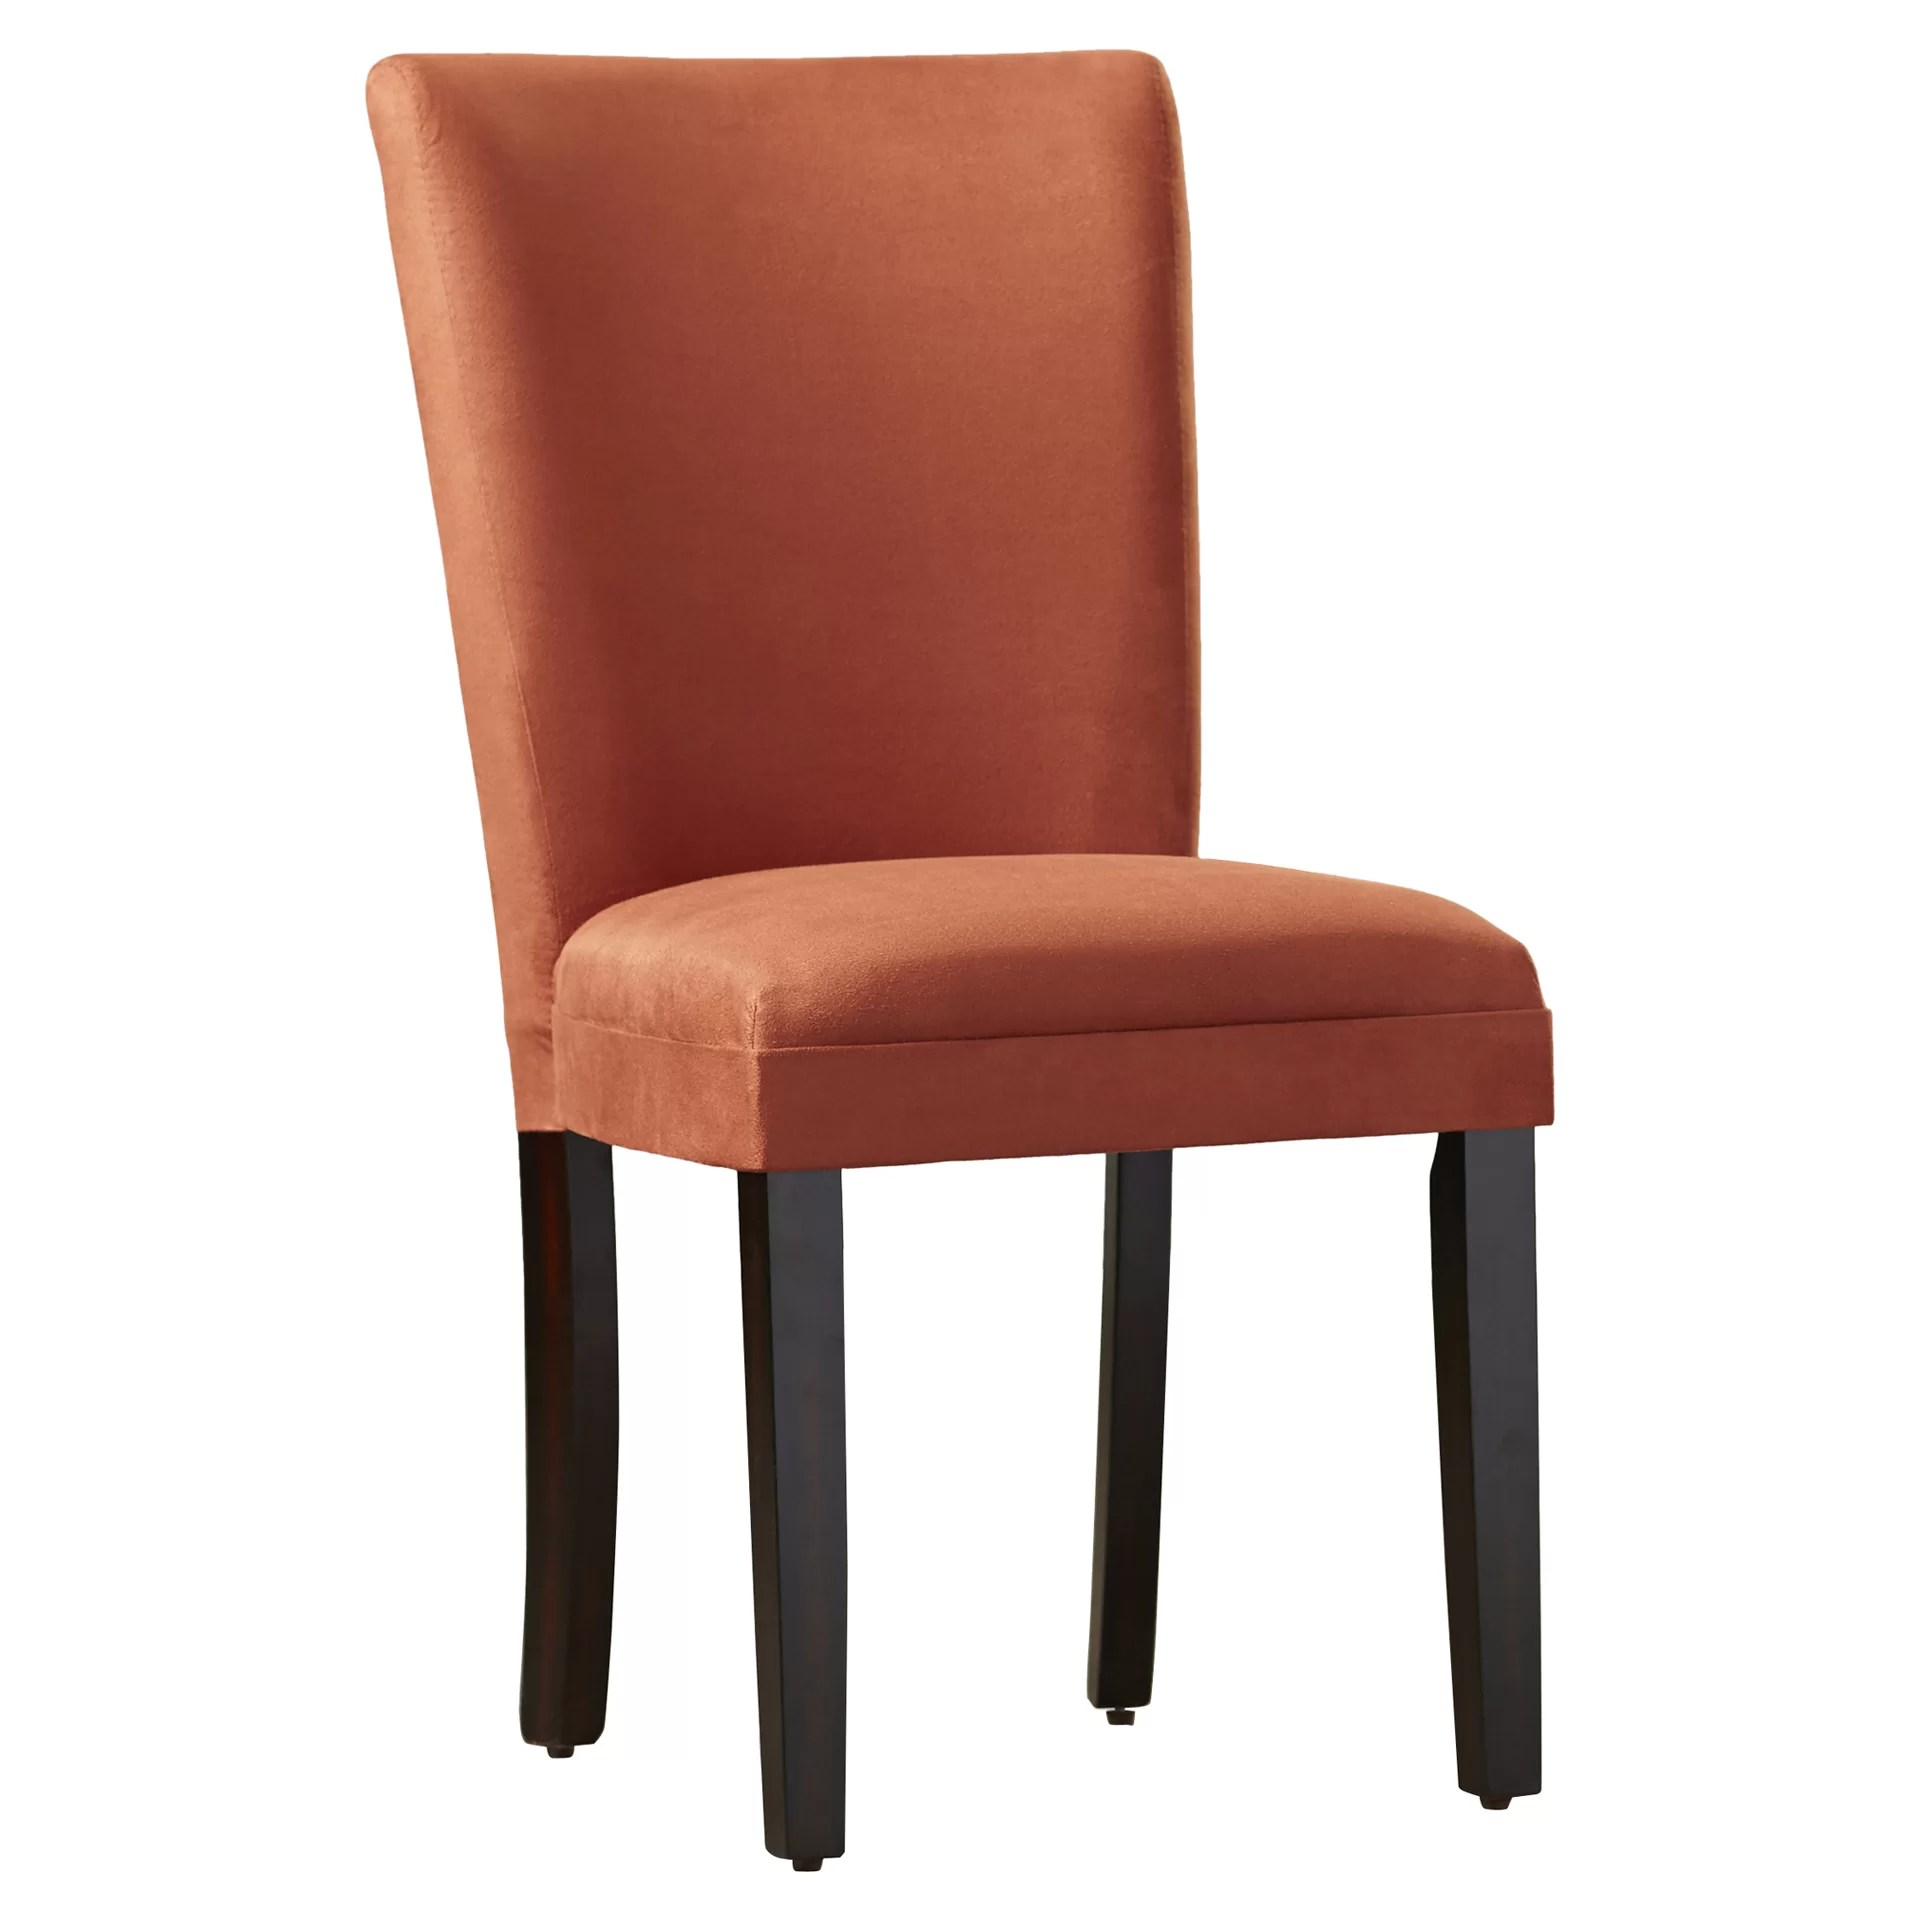 orange parsons chair modern design leather dining chairs home